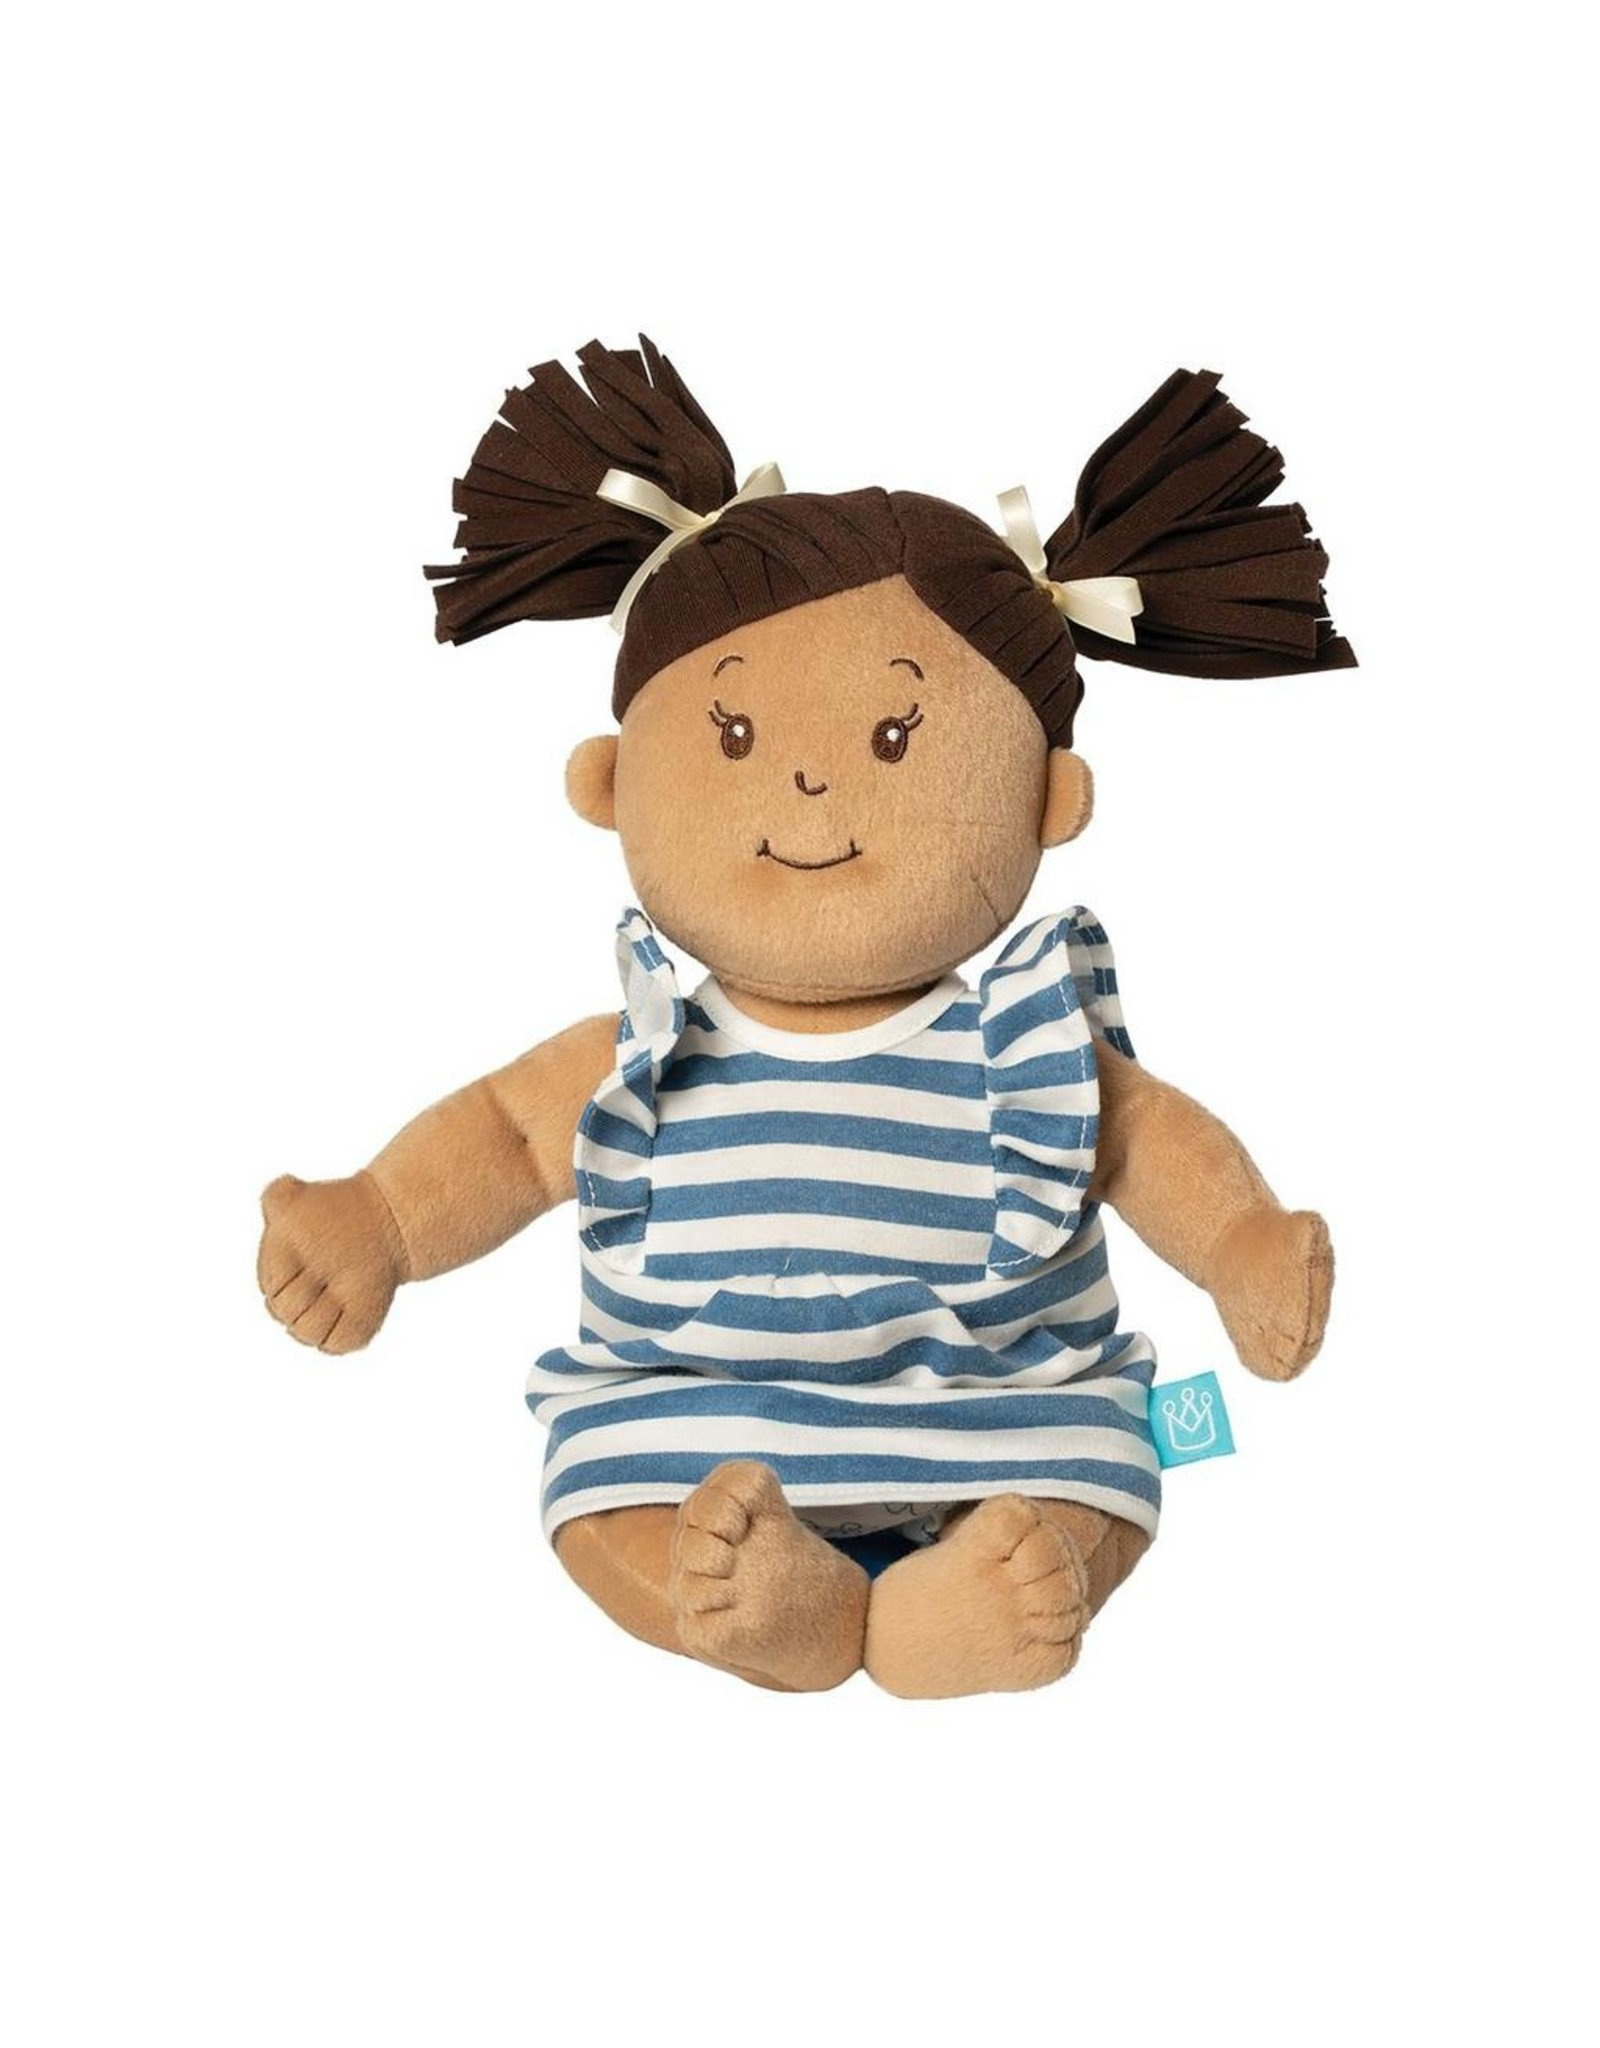 Manhattan Toy BABY STELLA BEIGE DOLL WITH BROWN HAIR